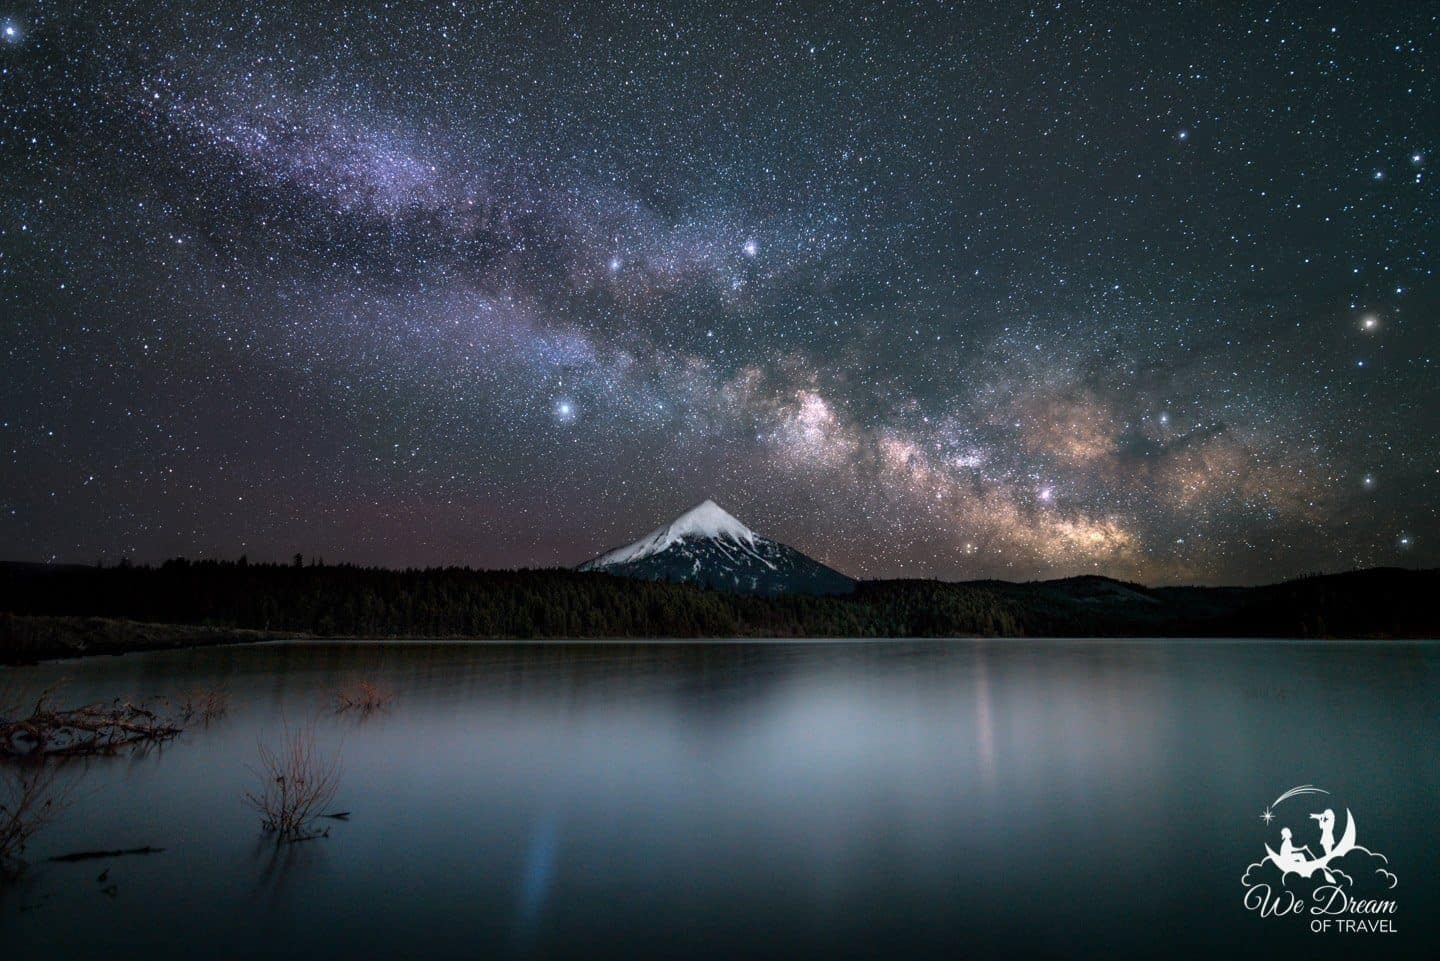 Willow Lake is the best place to visit in Oregon to photograph Milky Way night photography of Mt Mcloughlin